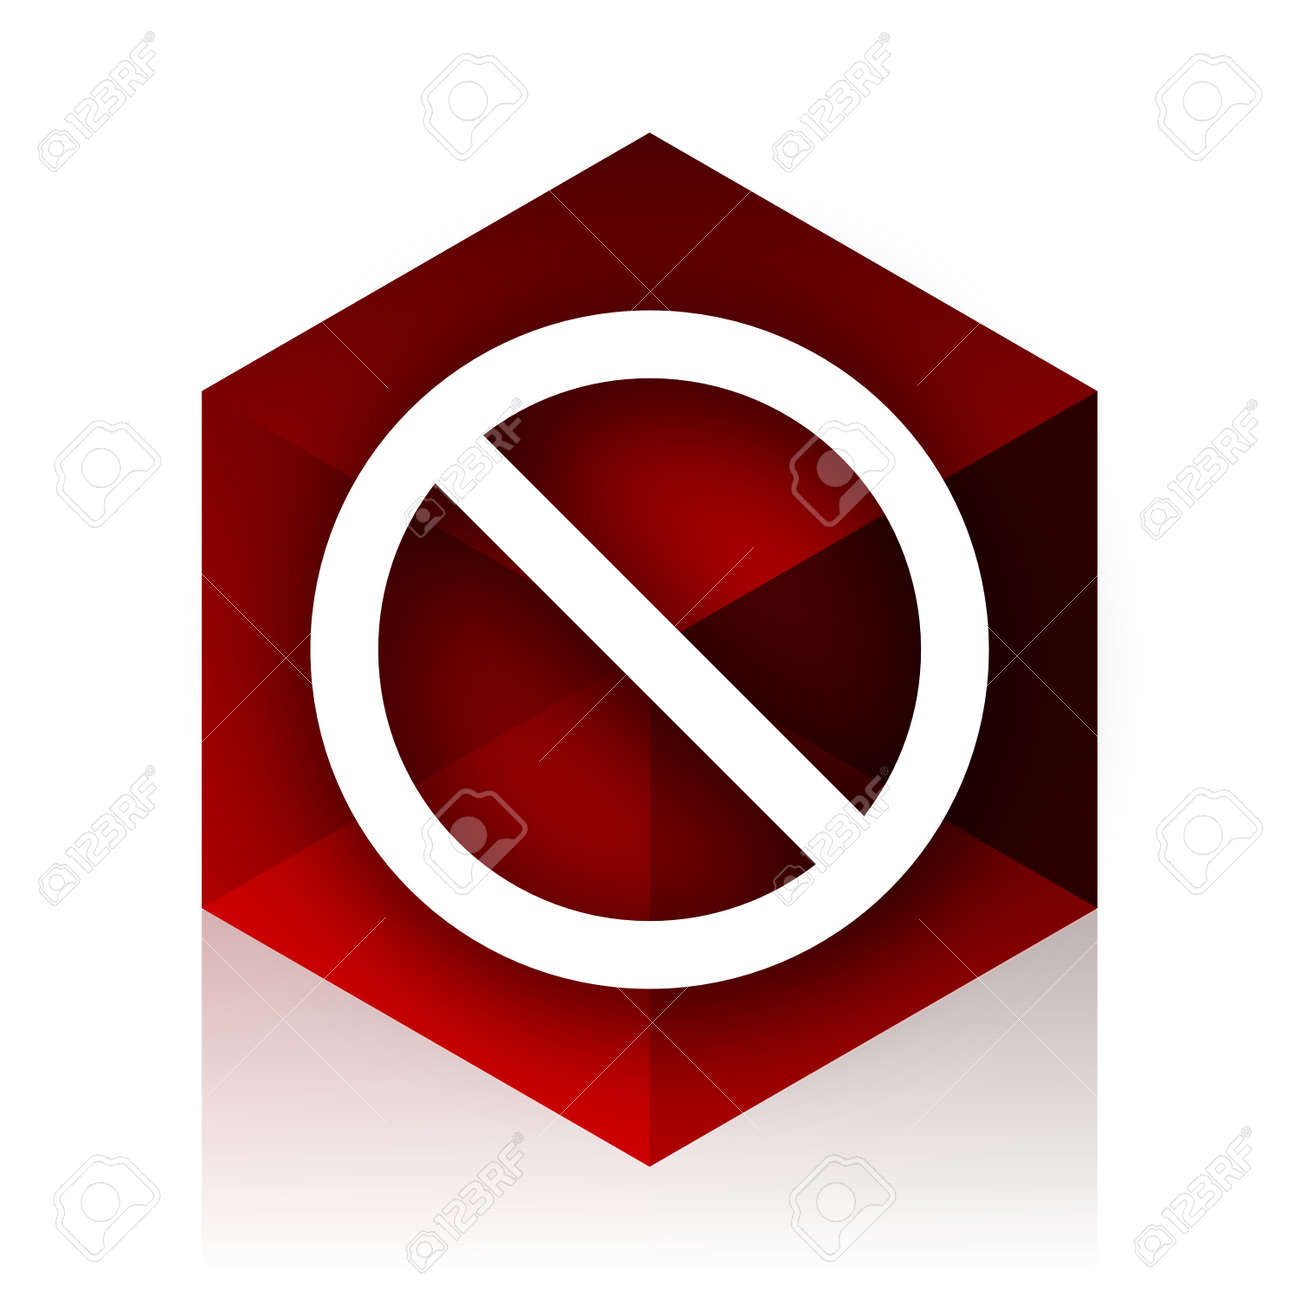 access denied red cube 3d modern design icon on white background